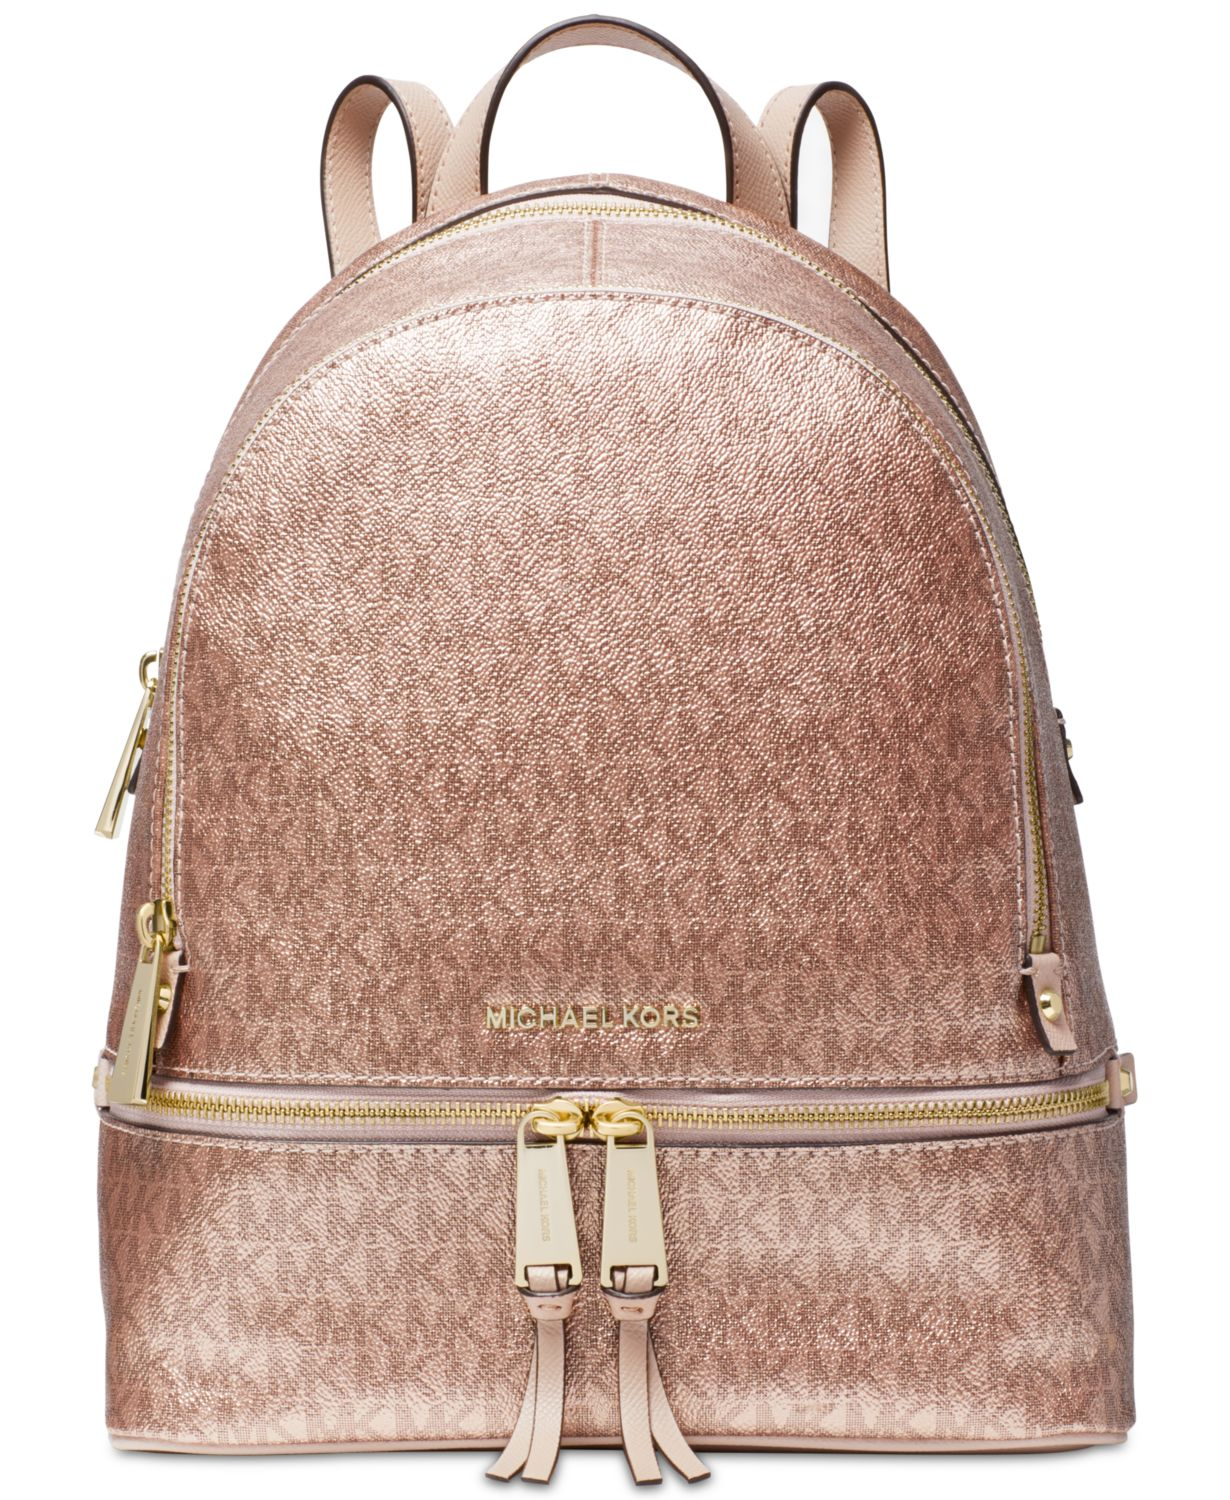 24f64771a42b Michael Kors + Metallic Signature Rhea Zip Backpack